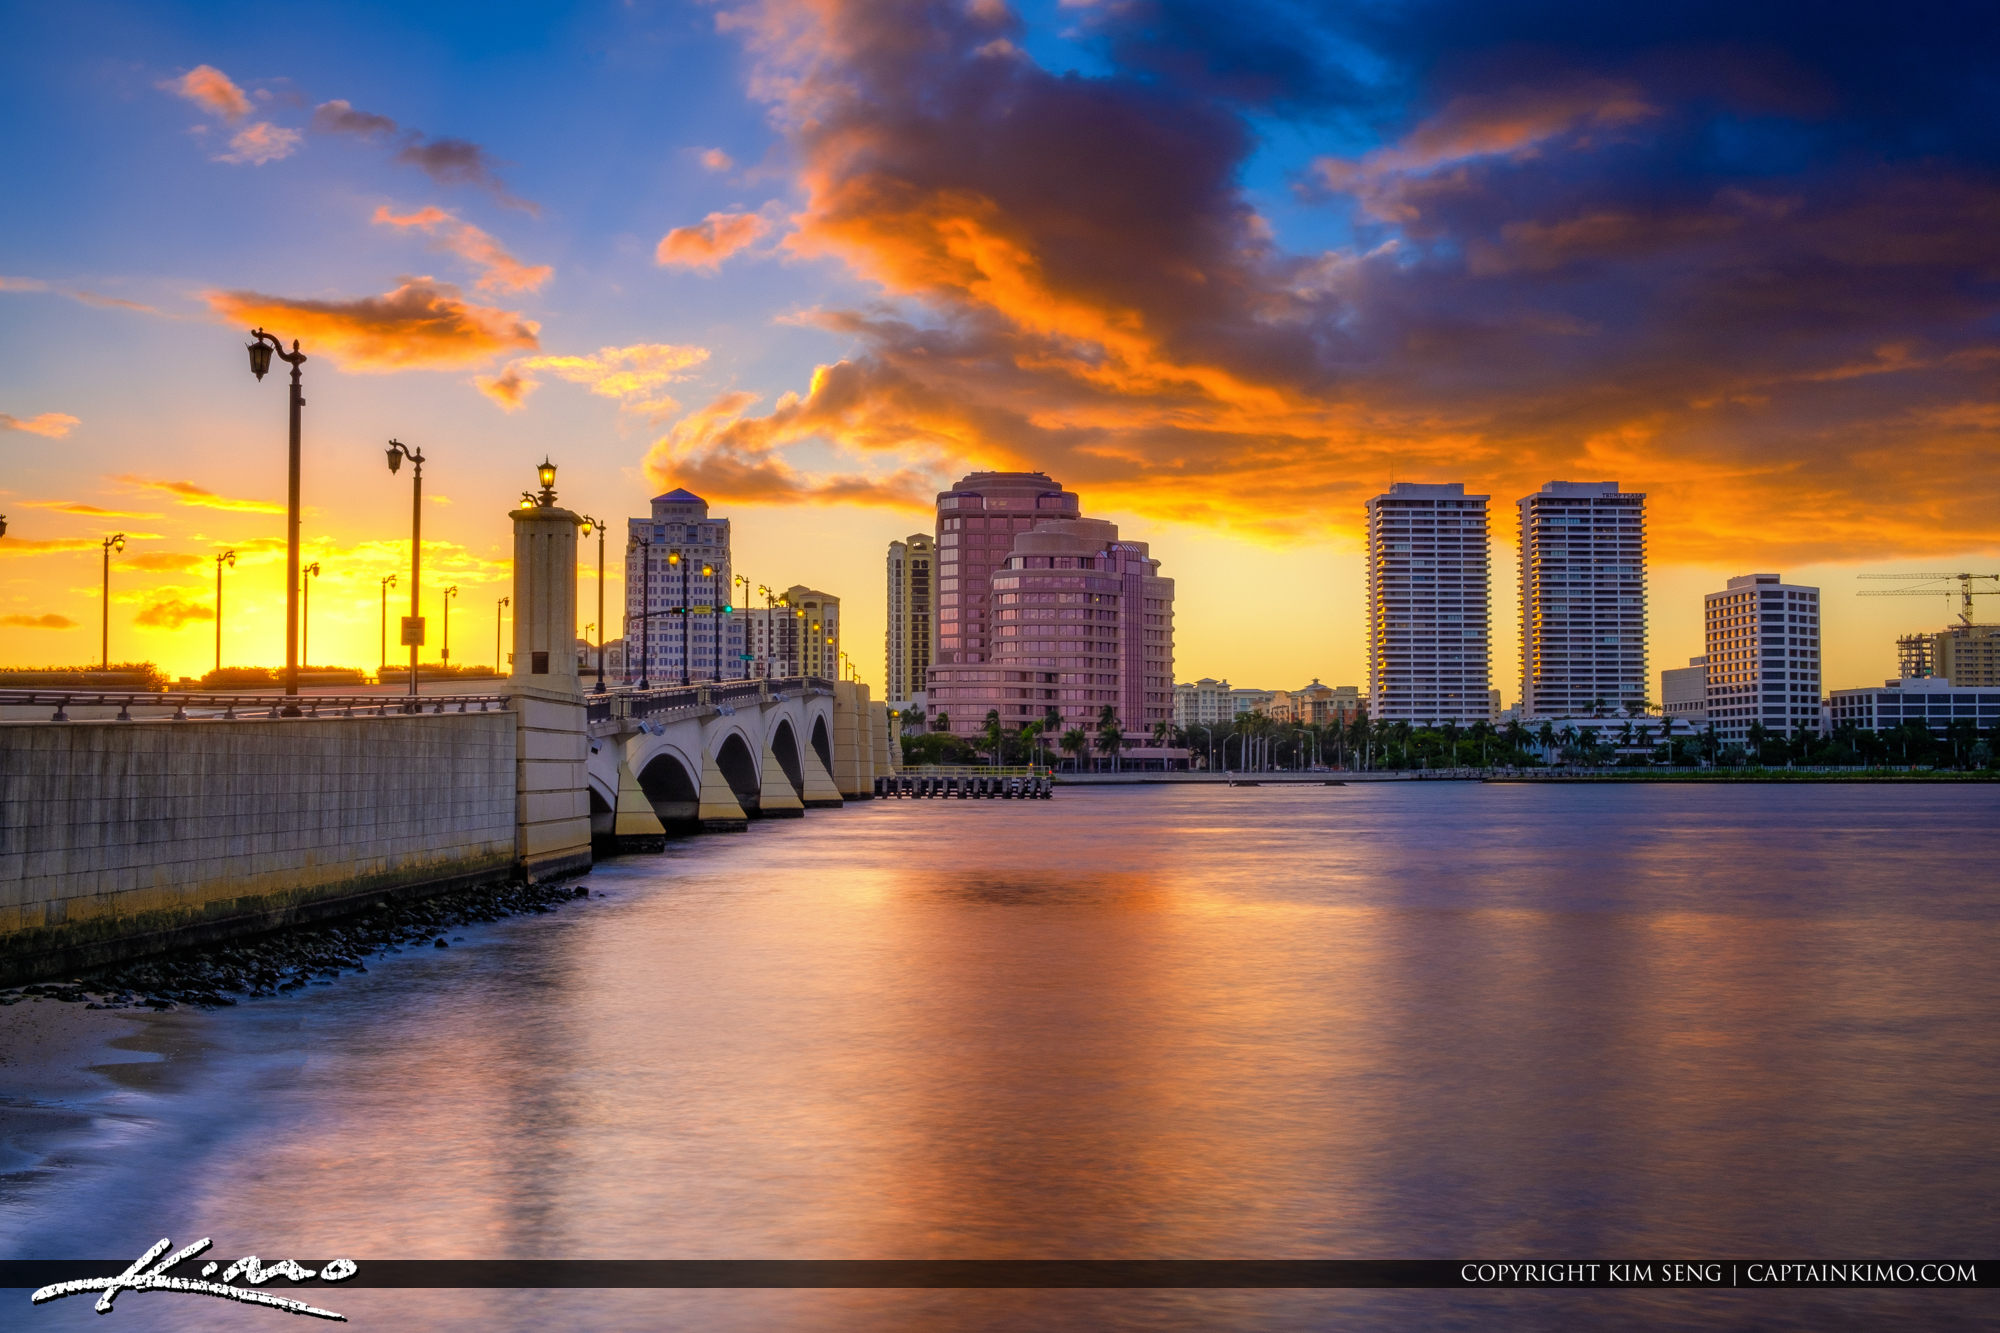 Explosive sunset from West Palm Beach Florida